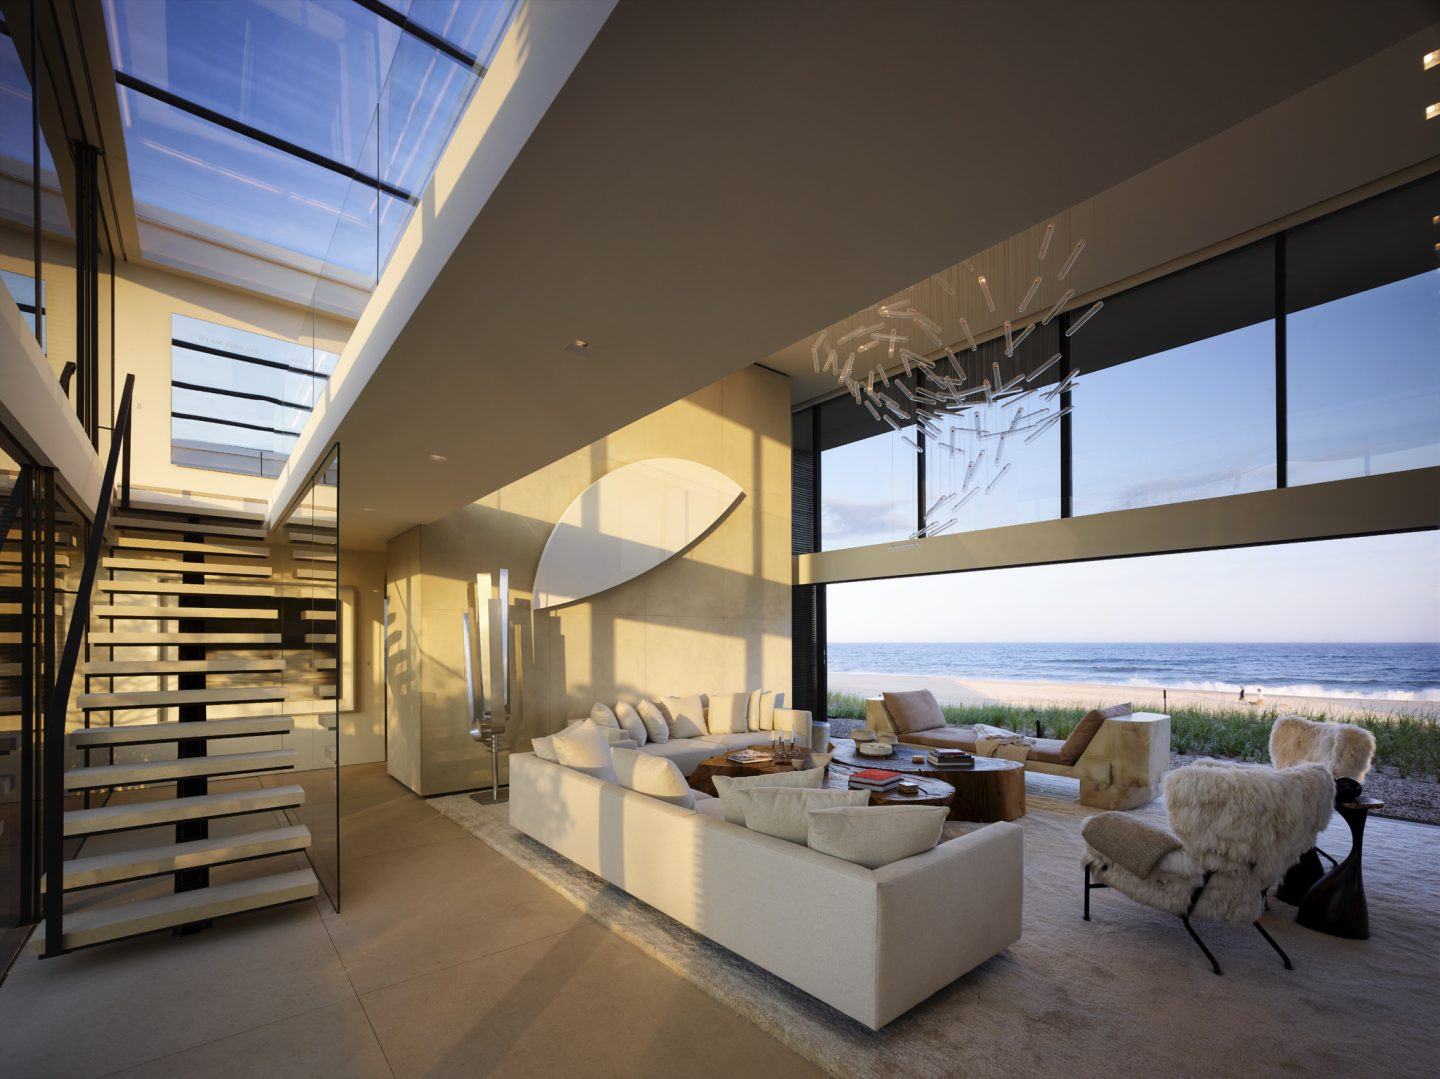 Modern living room of oceanfront home. A wall of glass rises in the air to eliminate any separation from the outdoors. #beachhouse #oceanfront #housedesign #livingroom #modernarchitecture